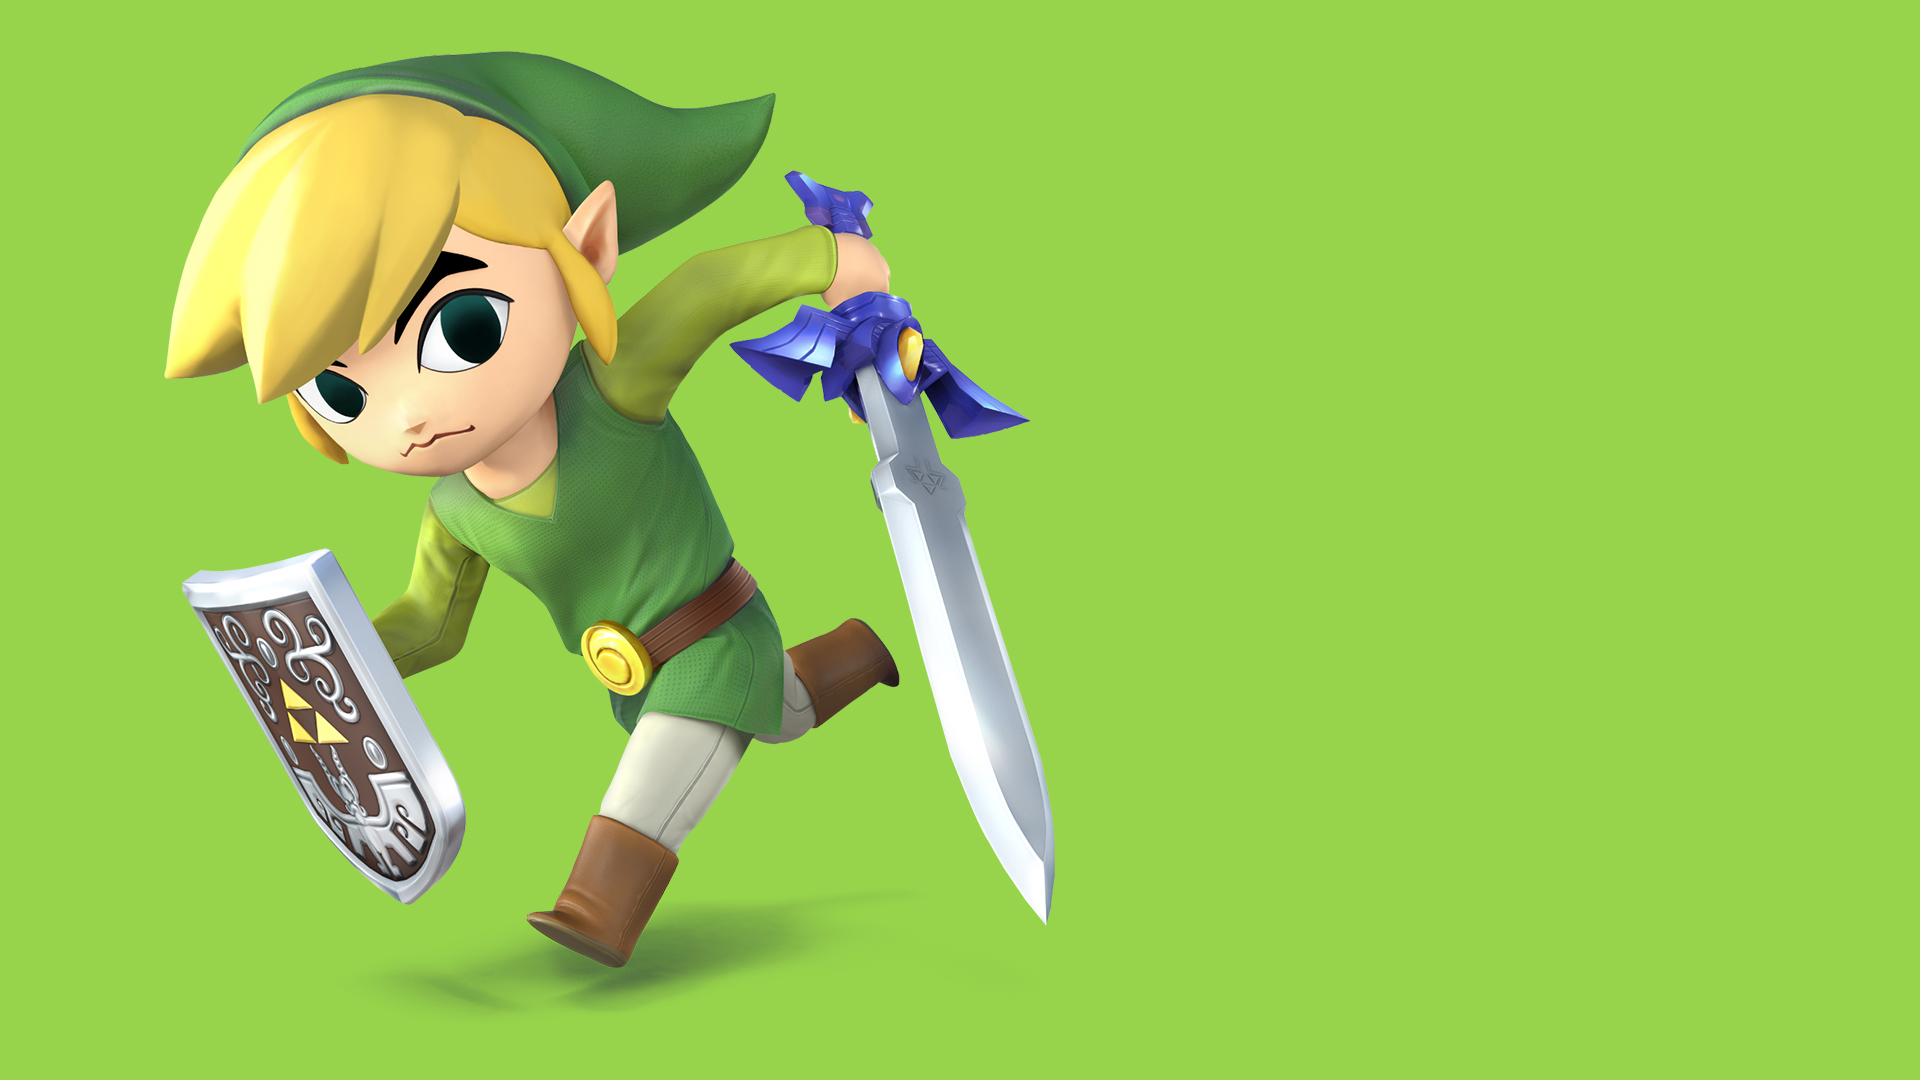 Toon Link Toon Link Wallpapers Pictures to pin 1920x1080